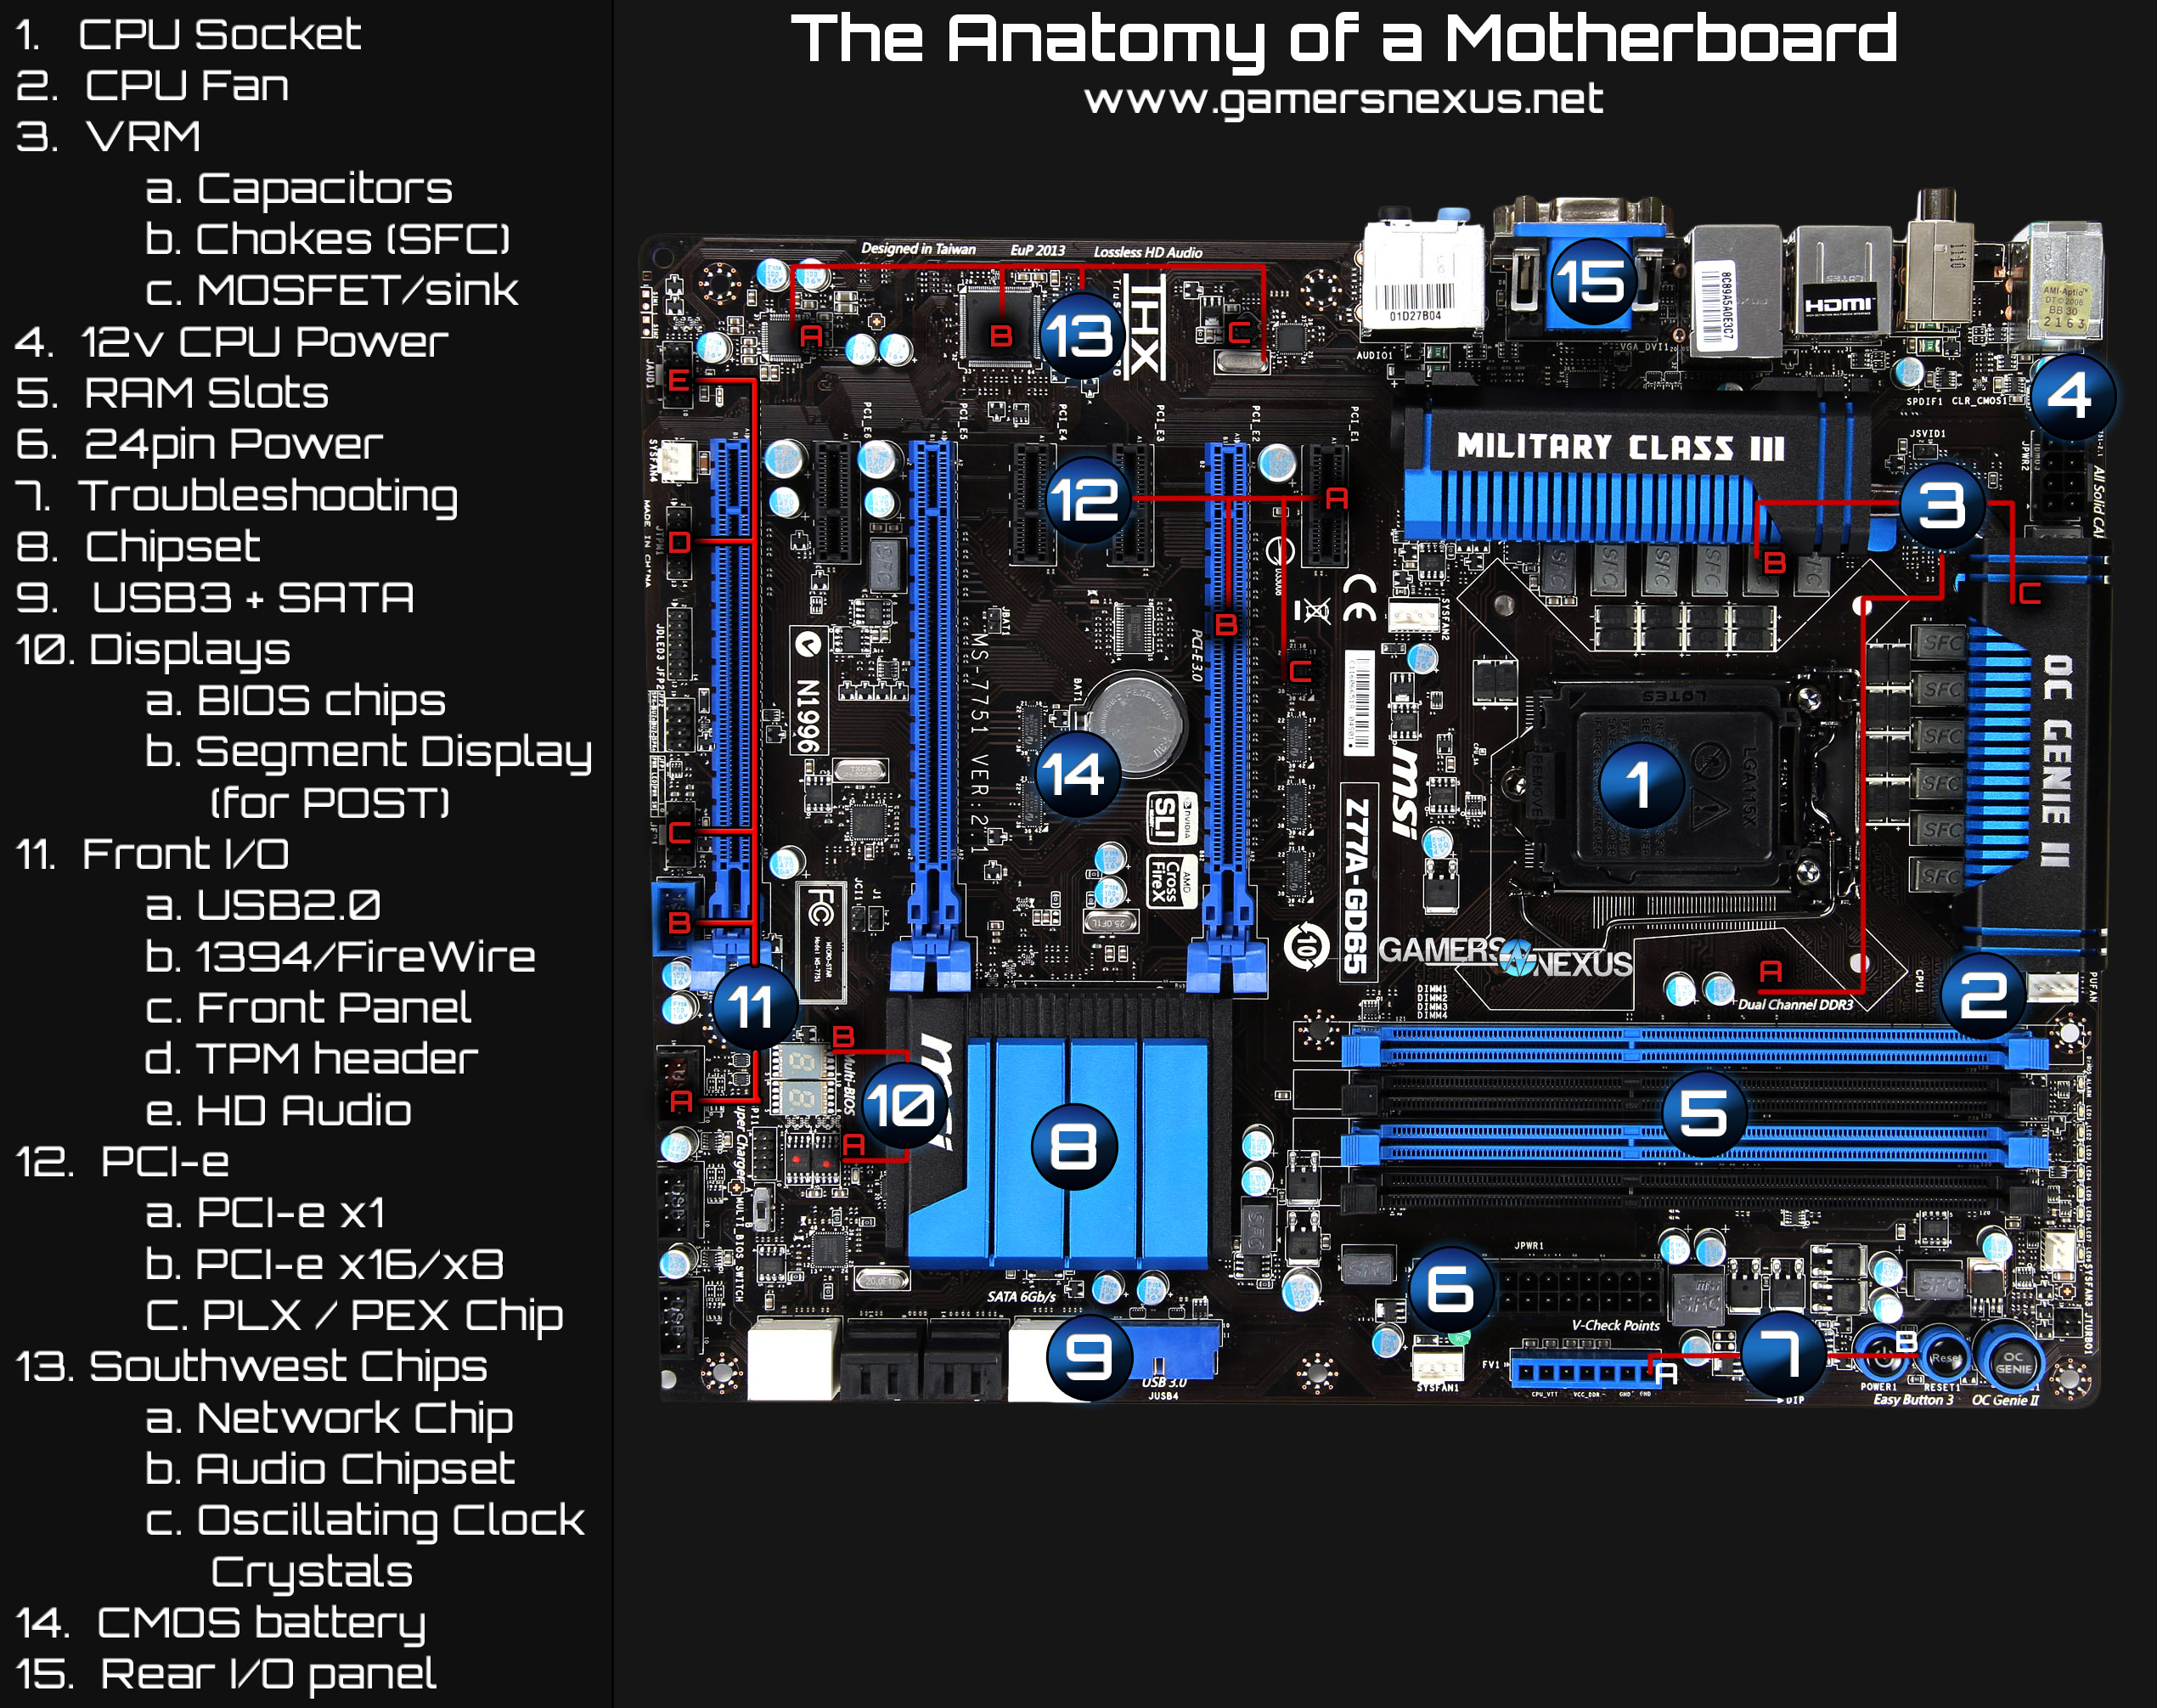 motherboard diagram1 anatomy of a motherboard vrm, chipset, & pci e explained motherboard diagram at fashall.co